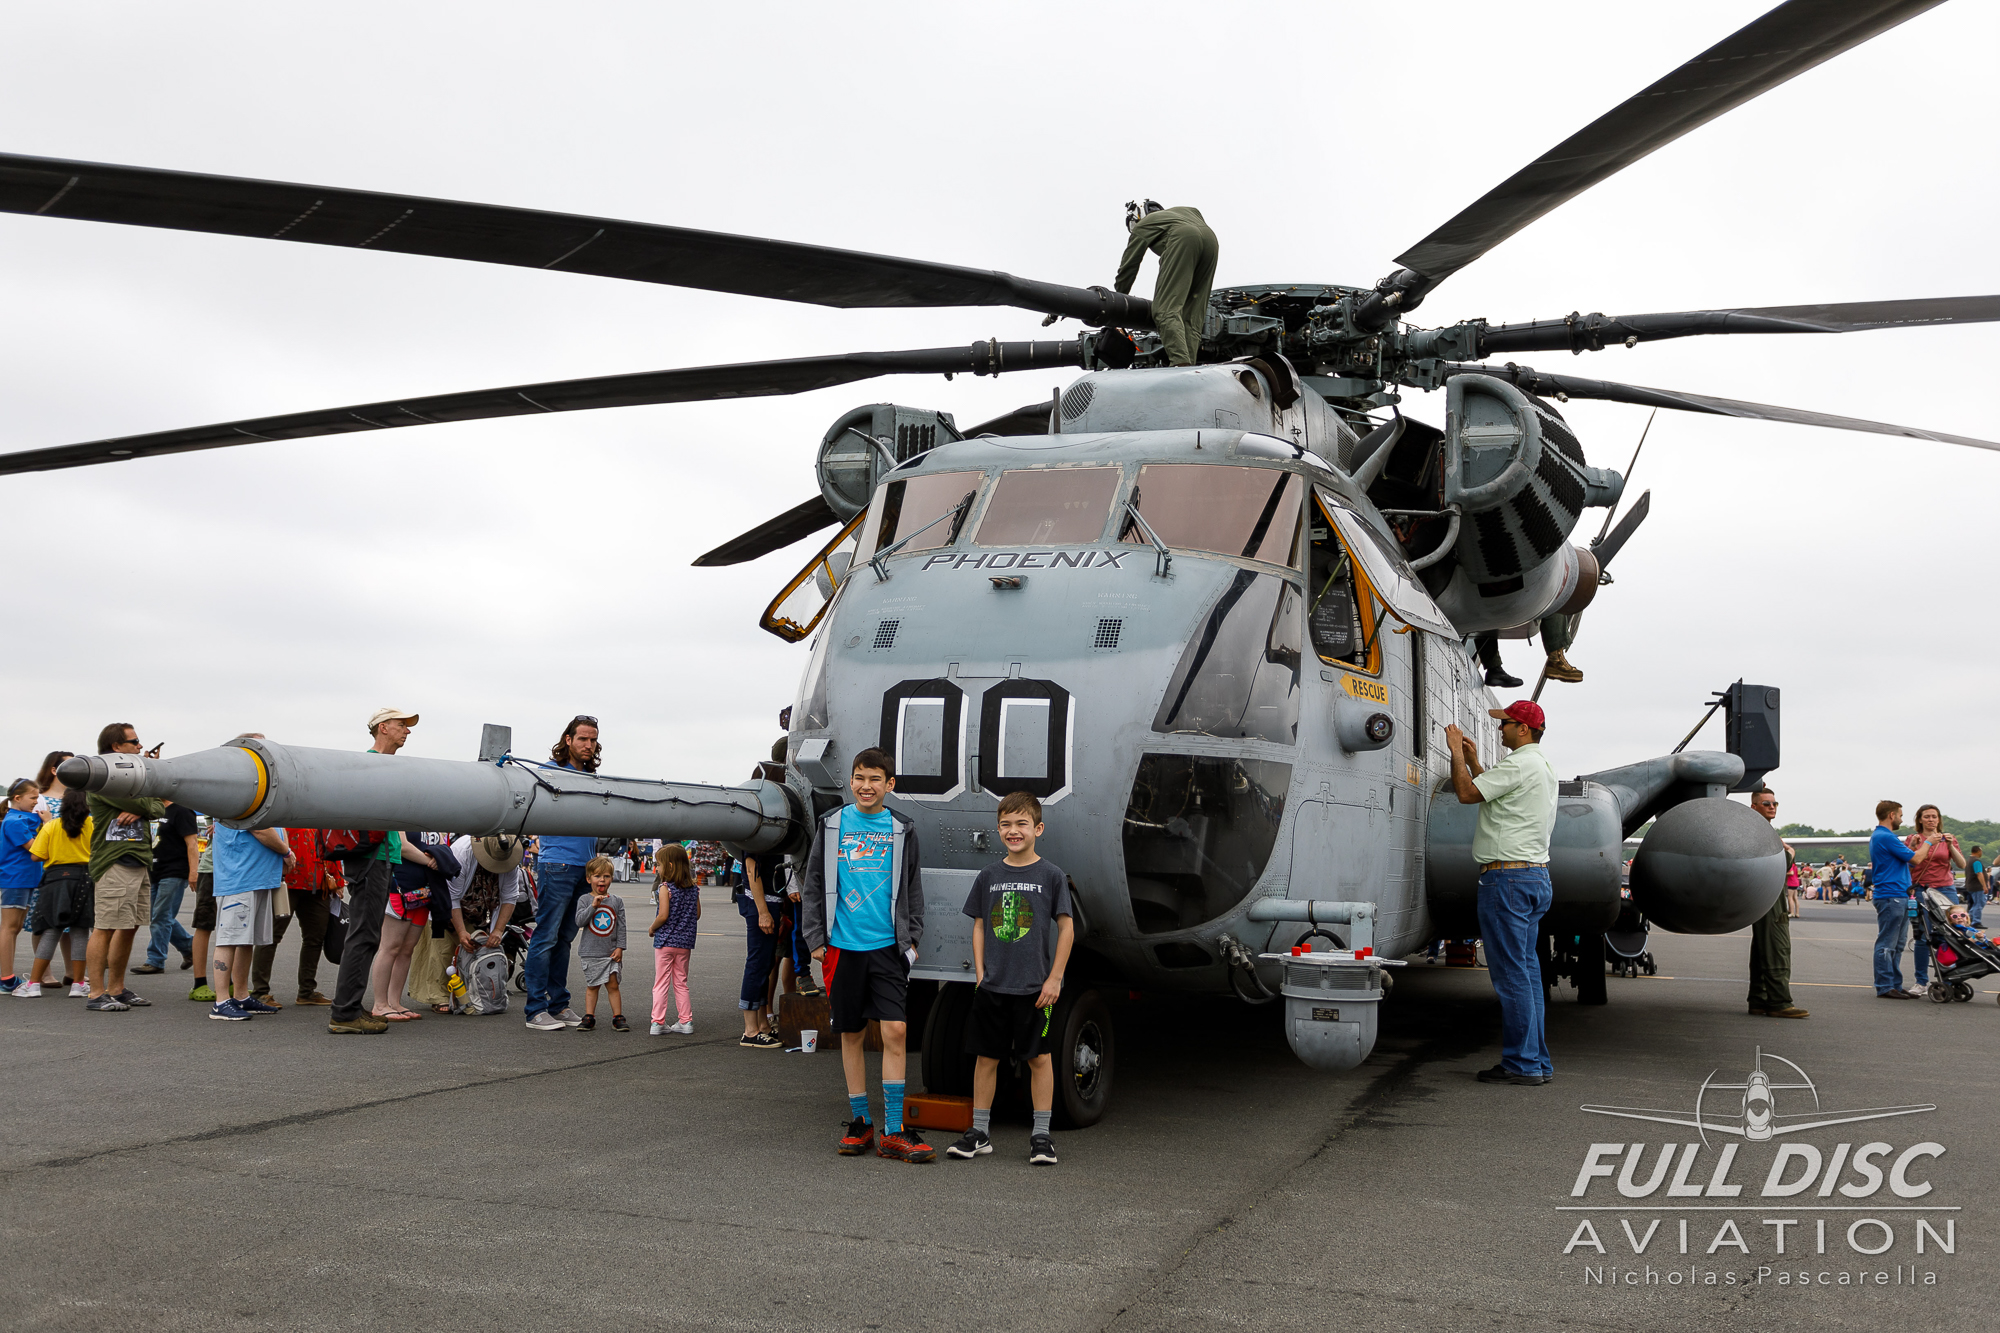 ch53_childrenpose_helicopter_usmarines_marines__aviation__nickpascarella_nicholaspascarella_fulldiscaviation_leasewebmanassasairshow.jpg